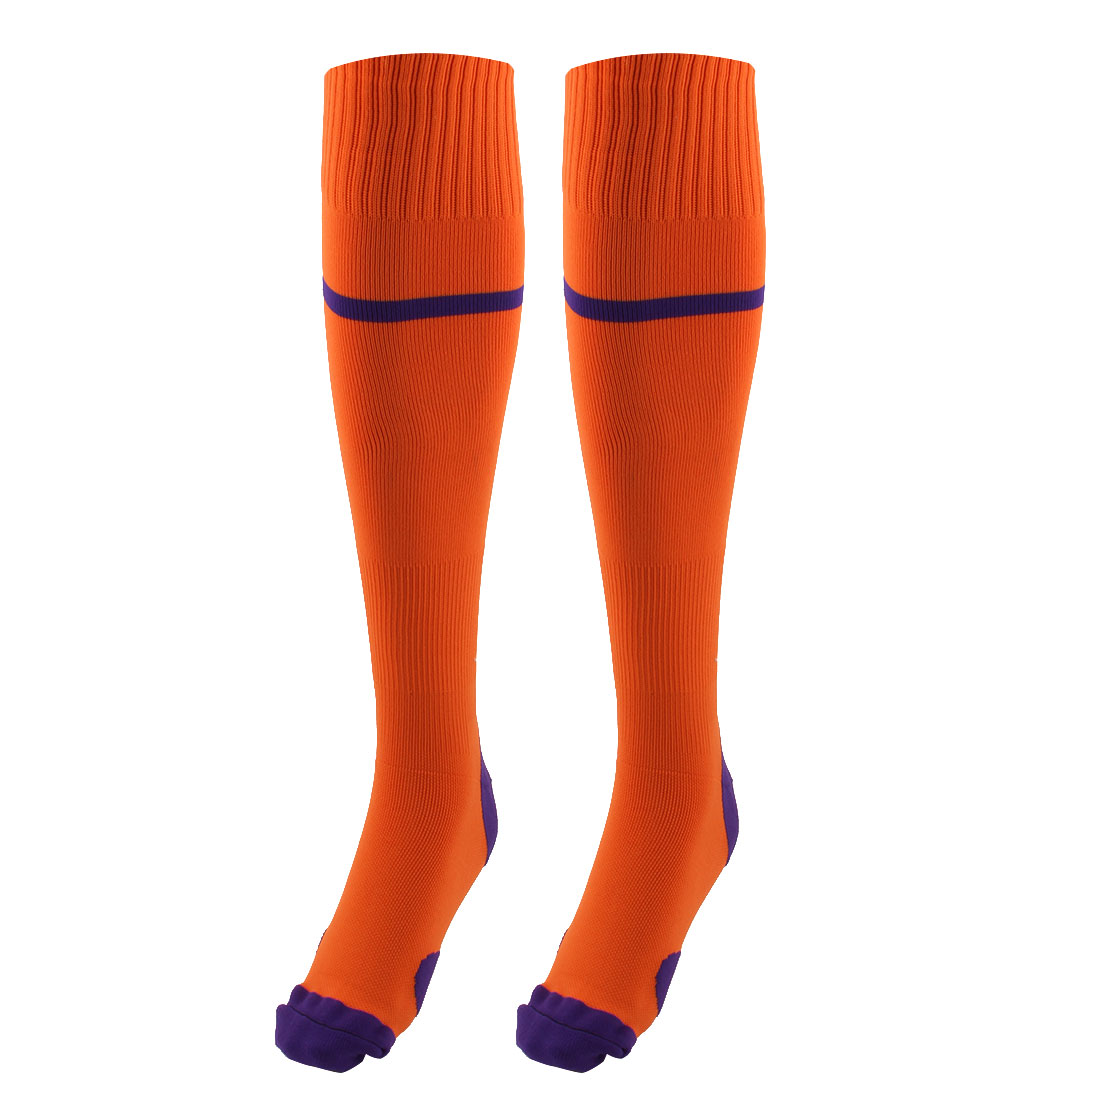 Outdoor Activities Nylon Knee High Stretchy Rugby Football Soccer Training Socks Orange Pair